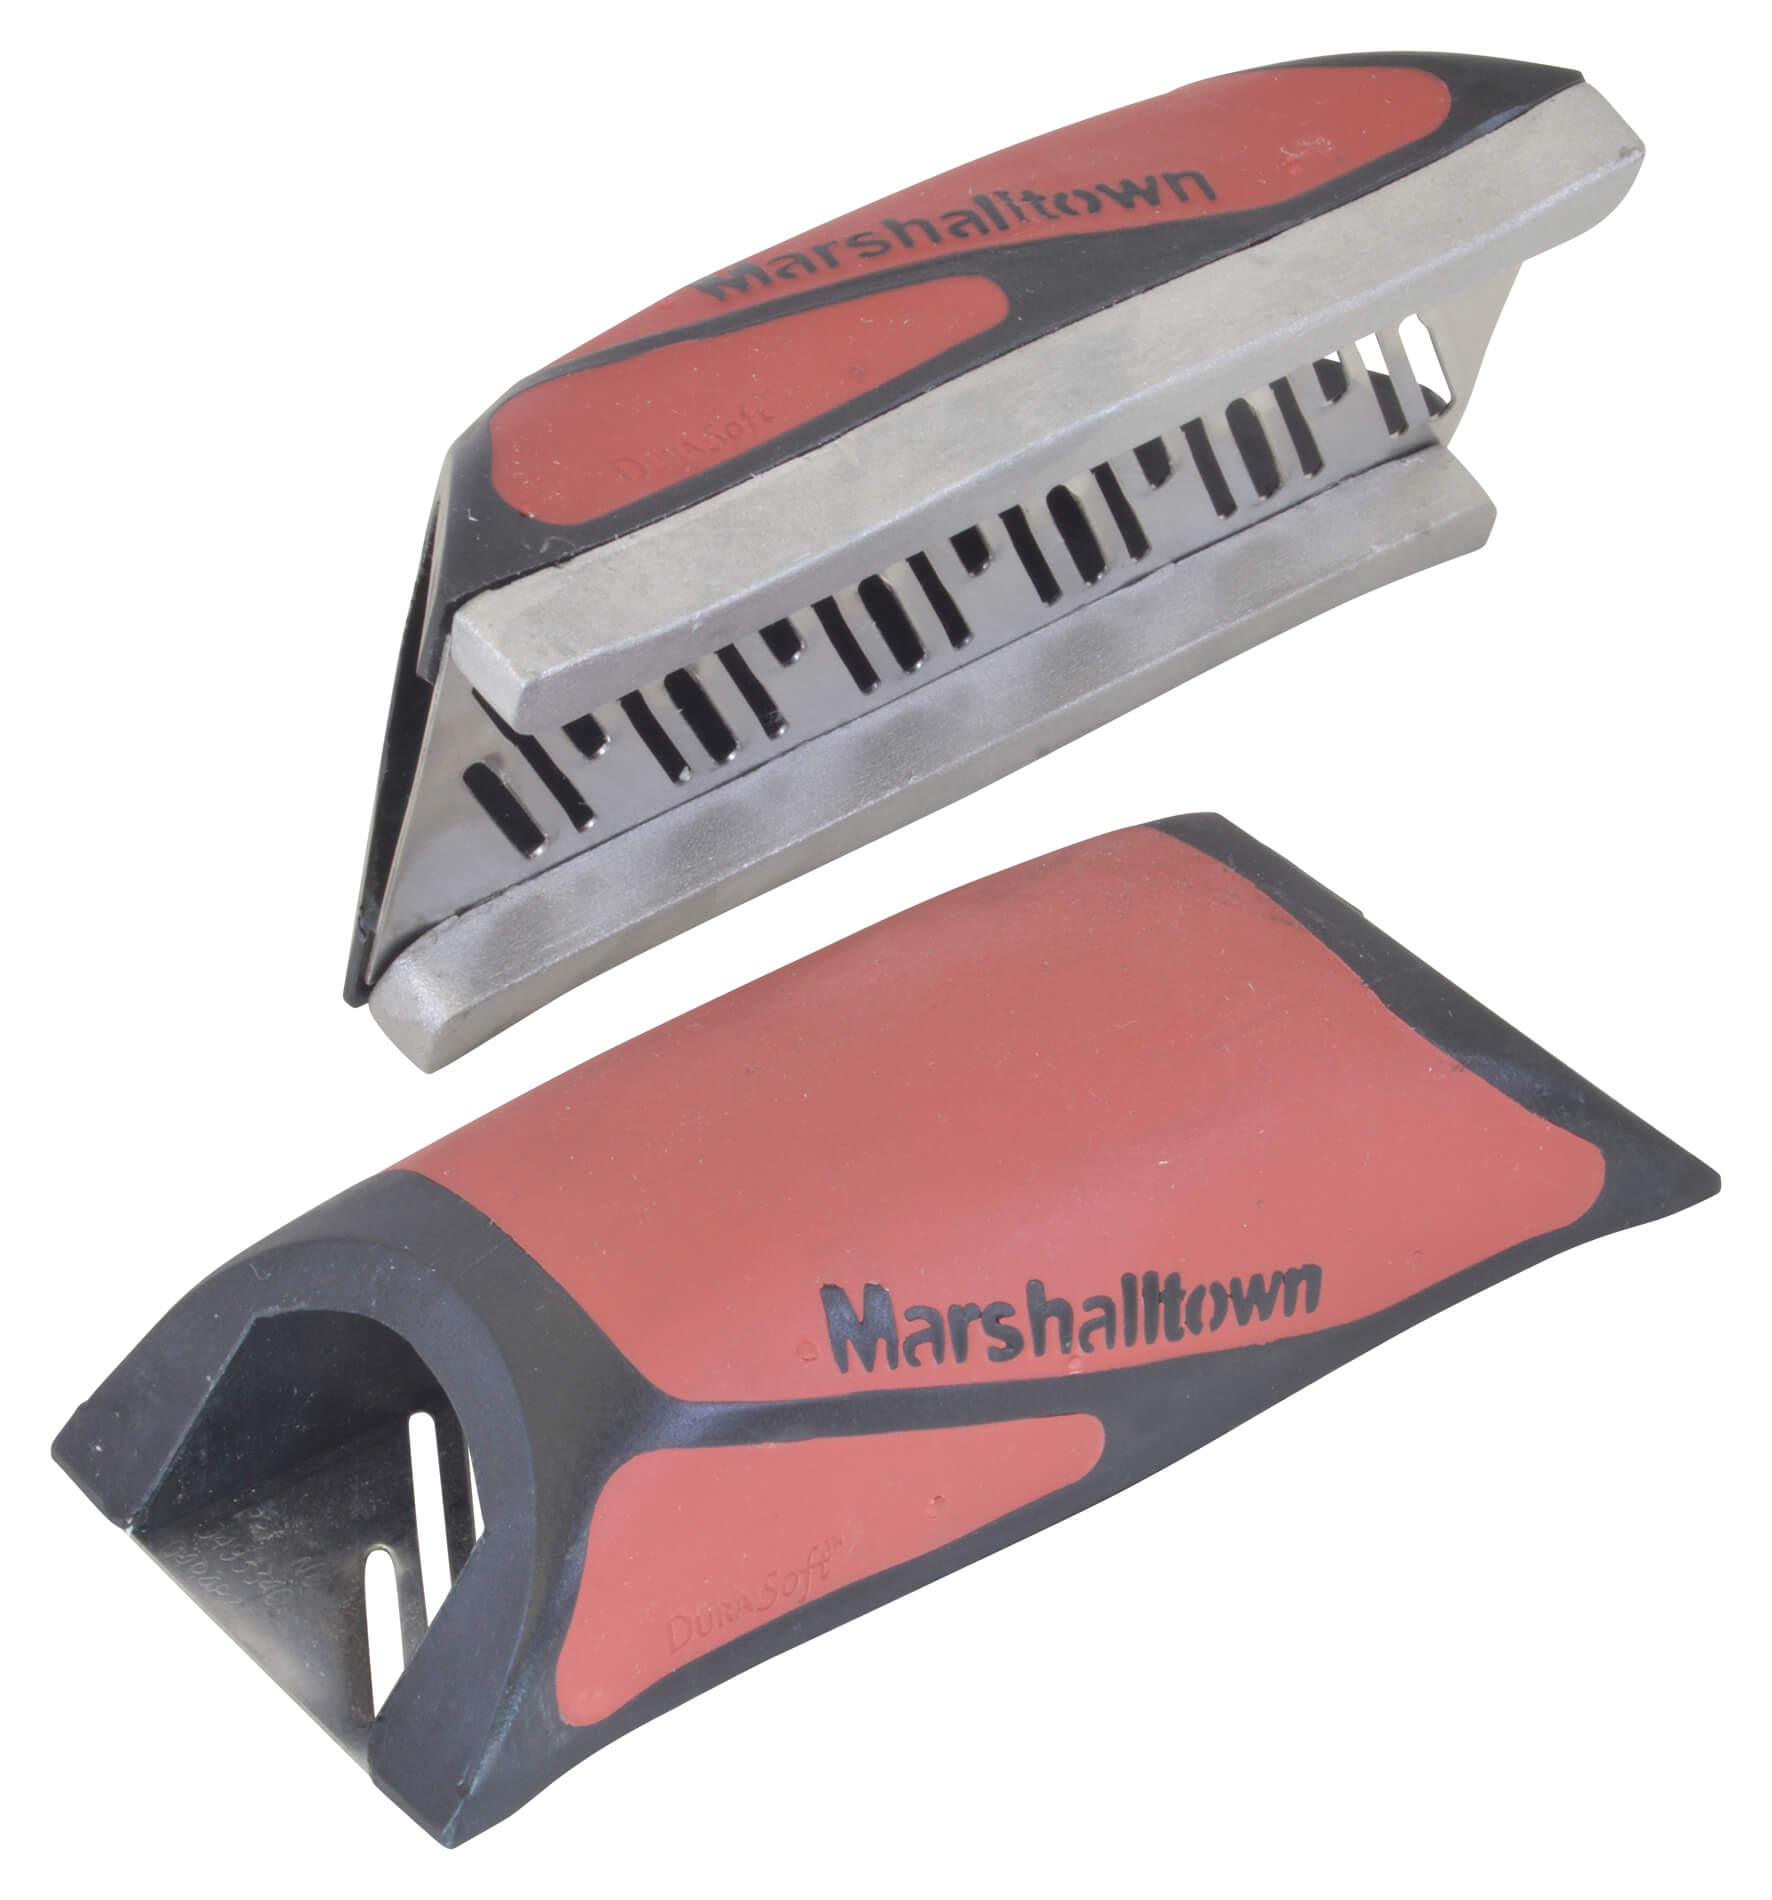 Marshalltown DR389 Drywall Rasp with Guide Rail